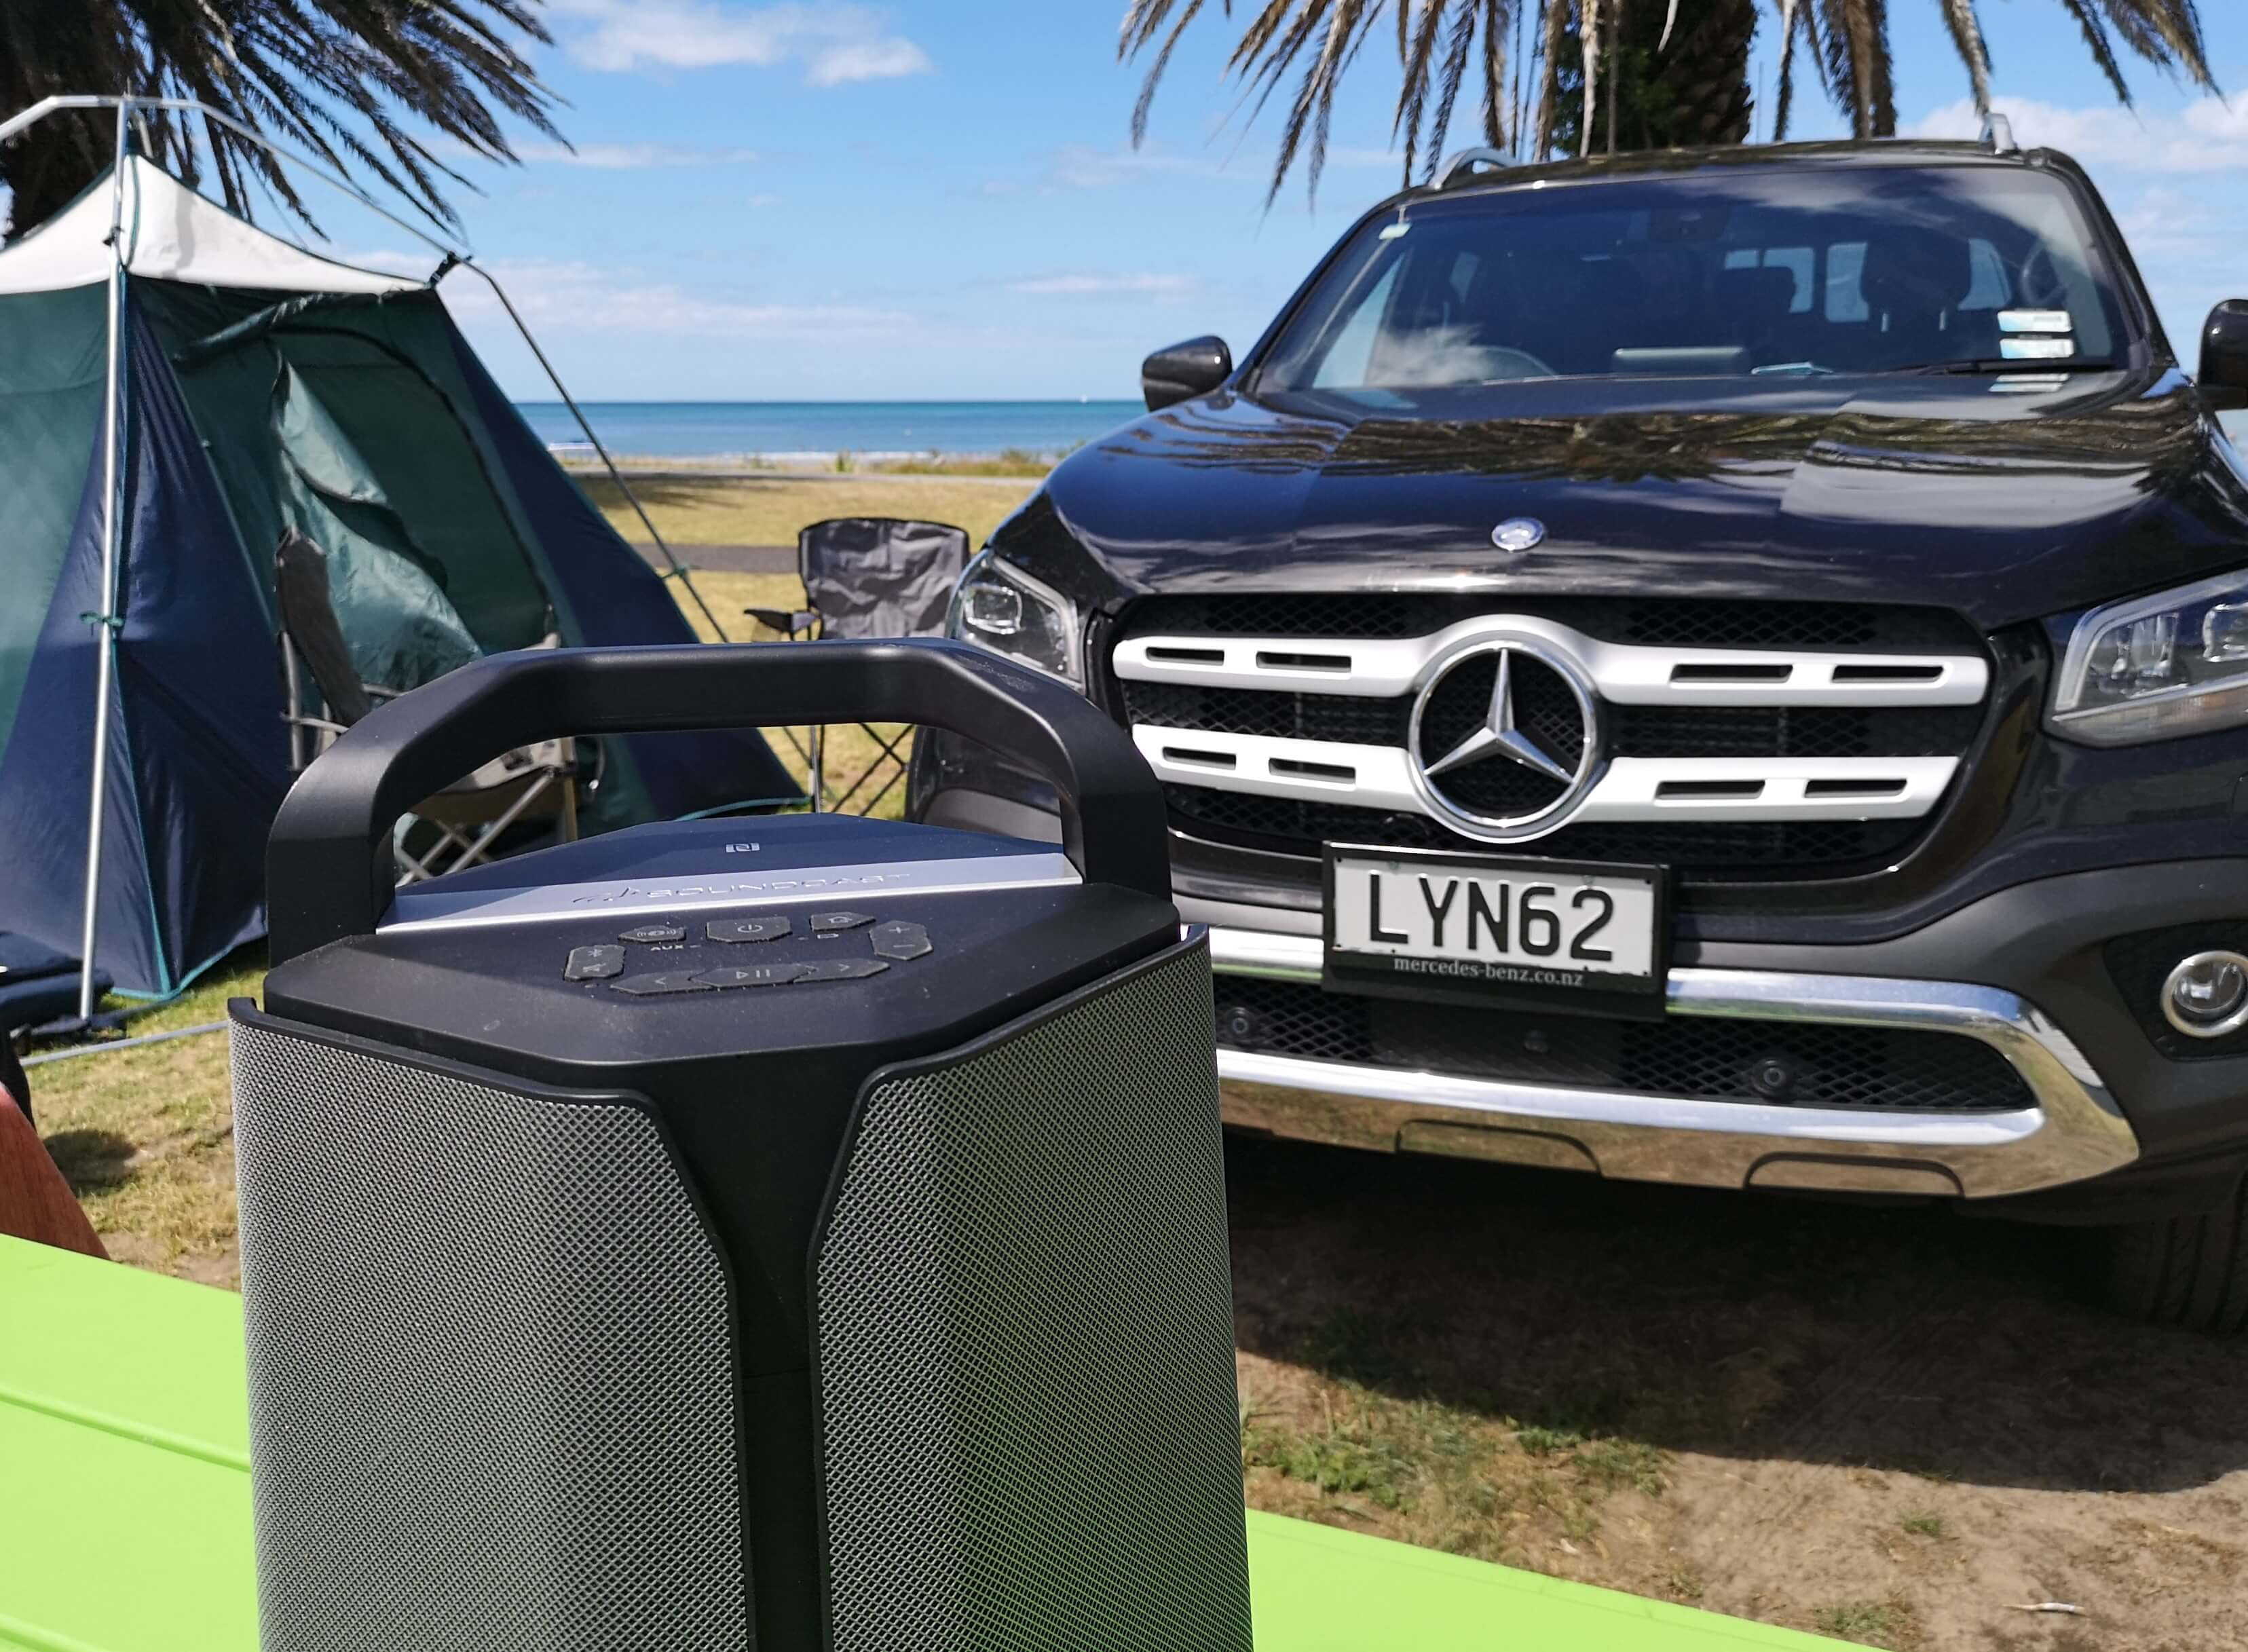 Soundcast VG7 with Mercedes X-Class